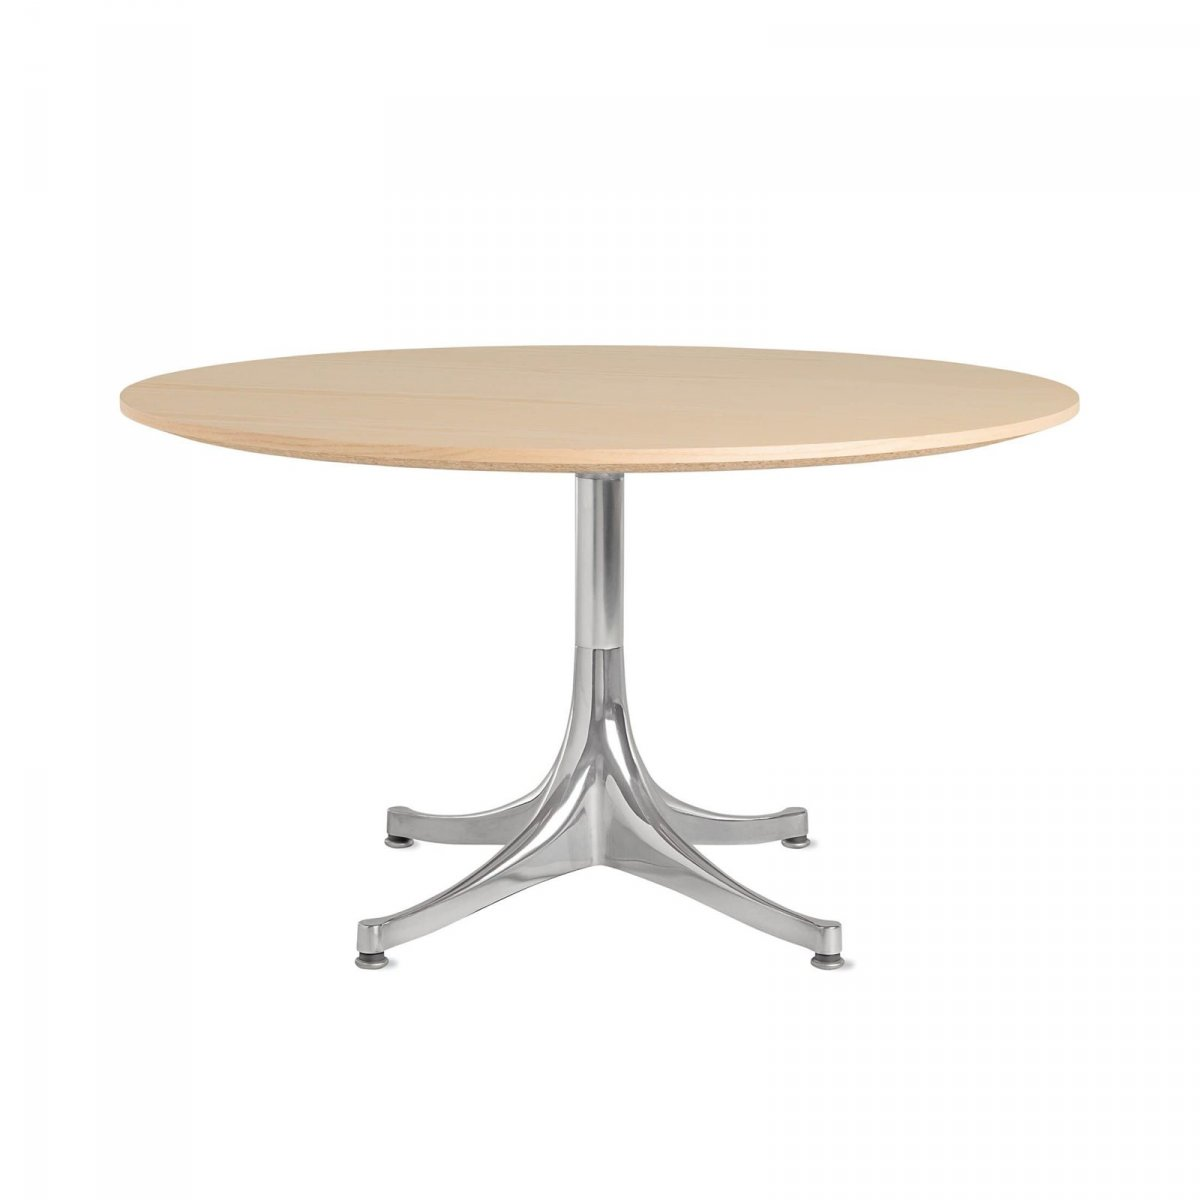 Nelson Pedestal Table 5452, white ash top with polished aluminum base.